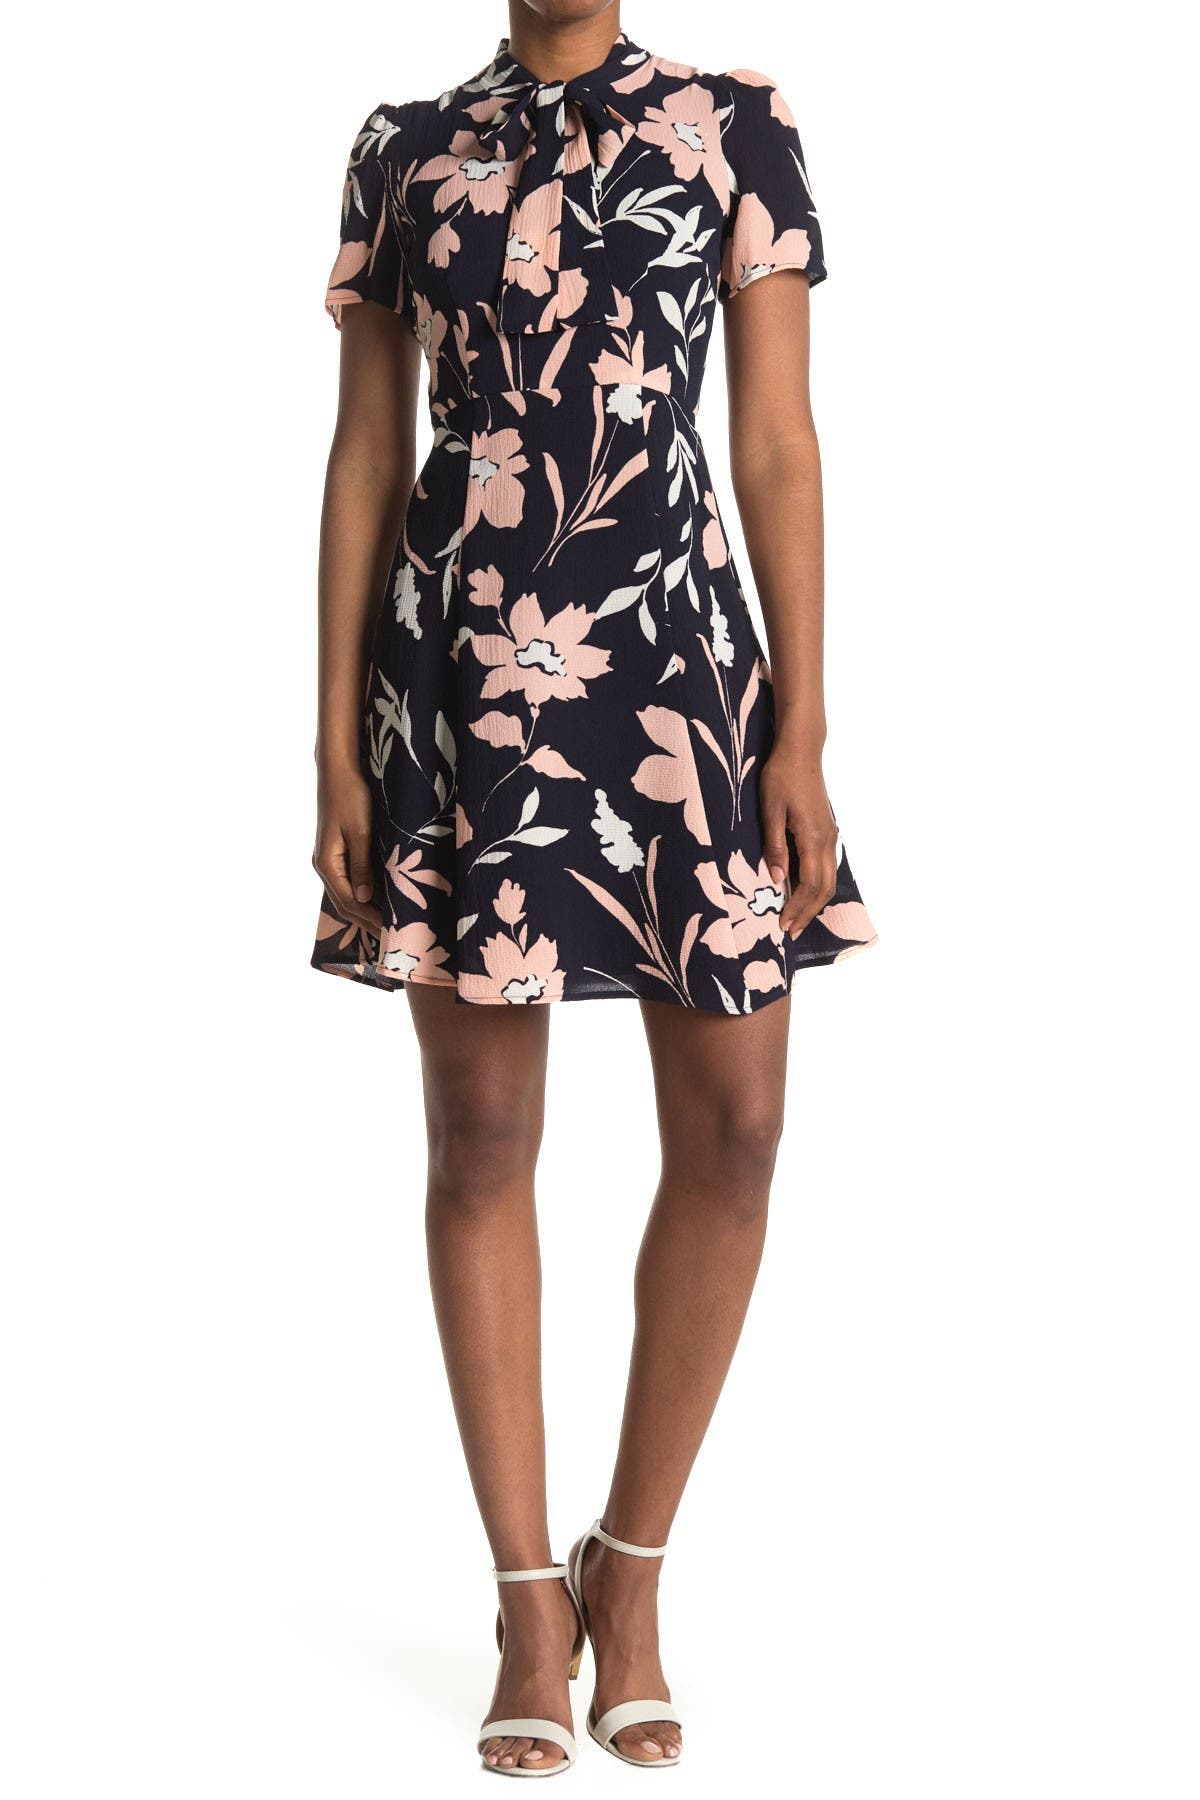 Image of Maggy London Floral Tie Neck Fit & Flare Dress